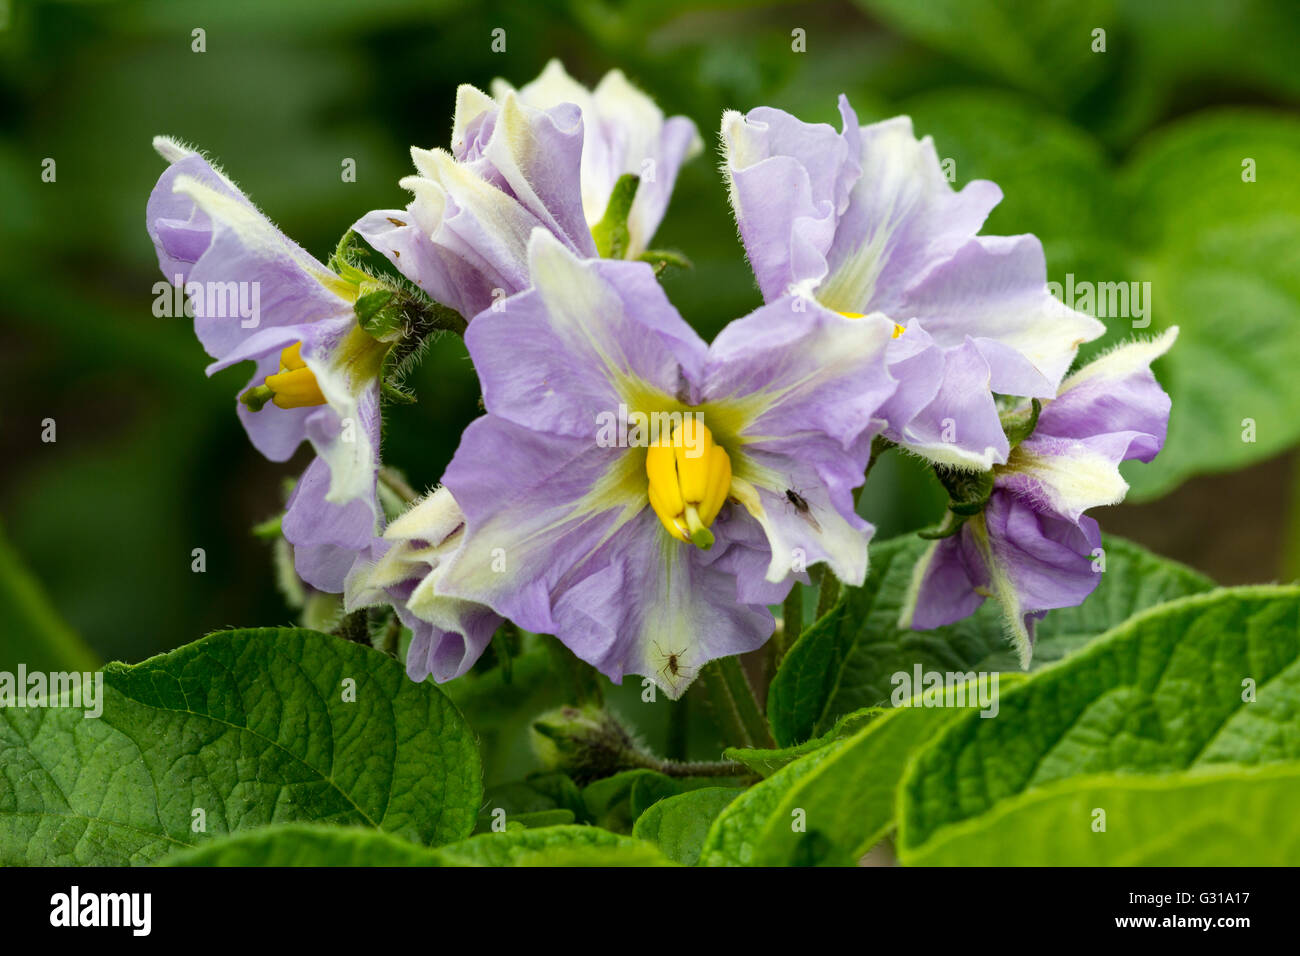 Attractive lilac and white flowers of the first early potato 'Maris Bard' - Stock Image